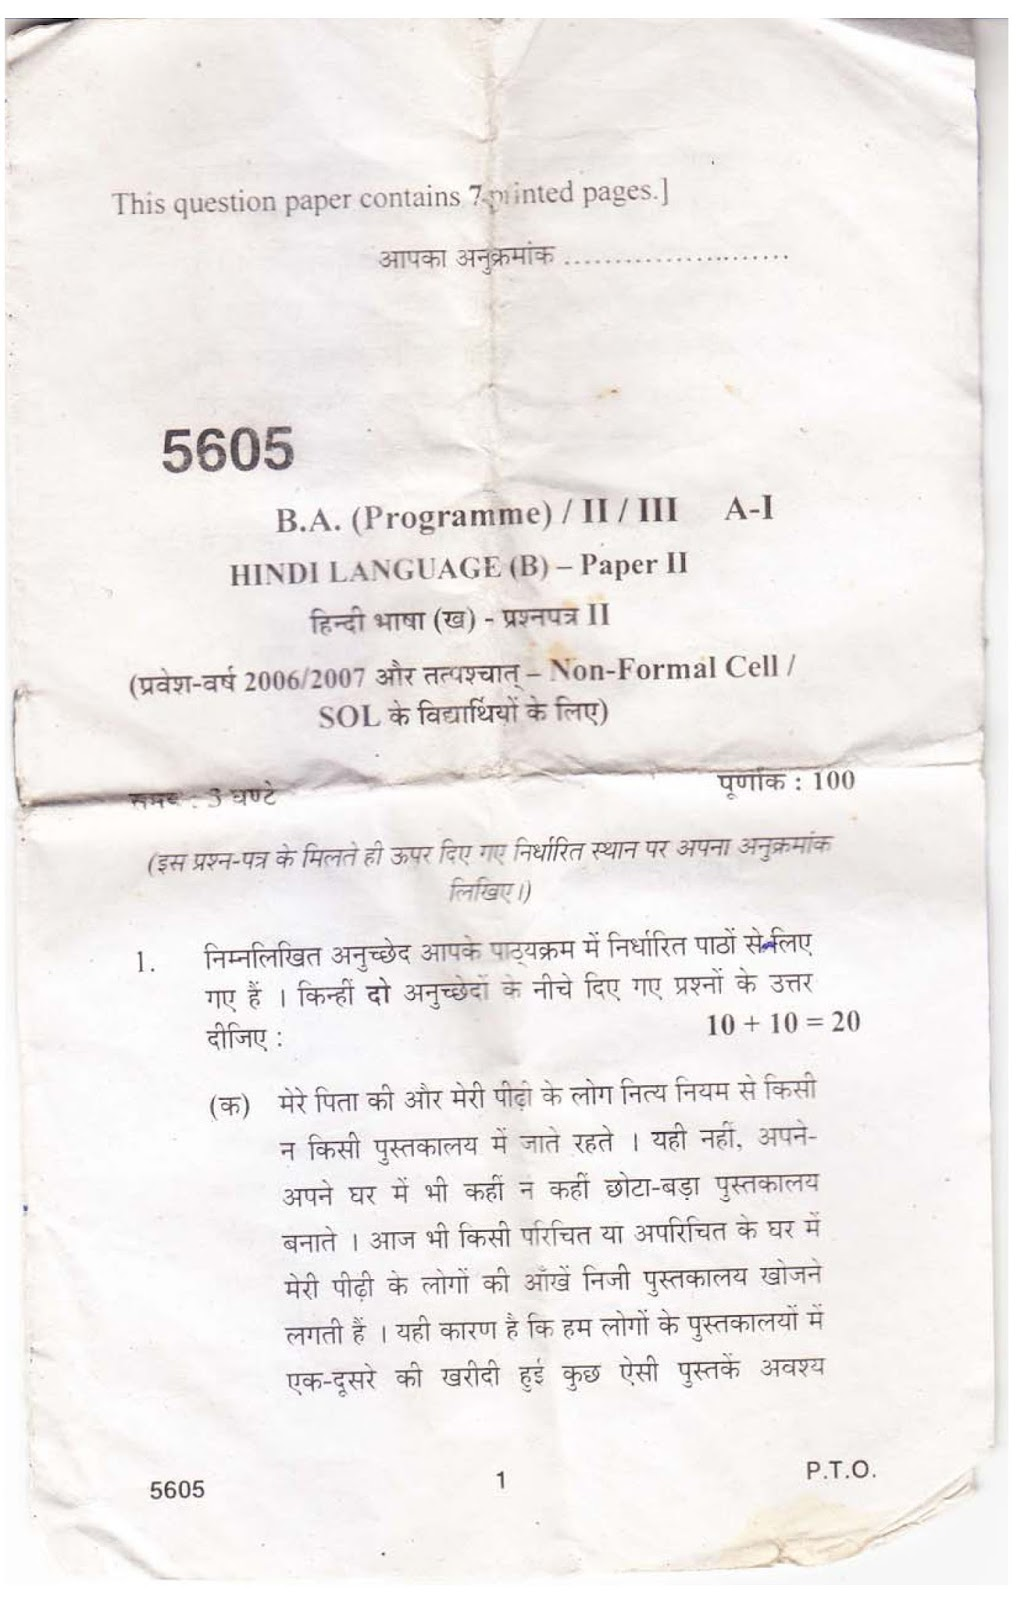 Education paper 3rd year - UGC NET Previous 10 Year Question papers